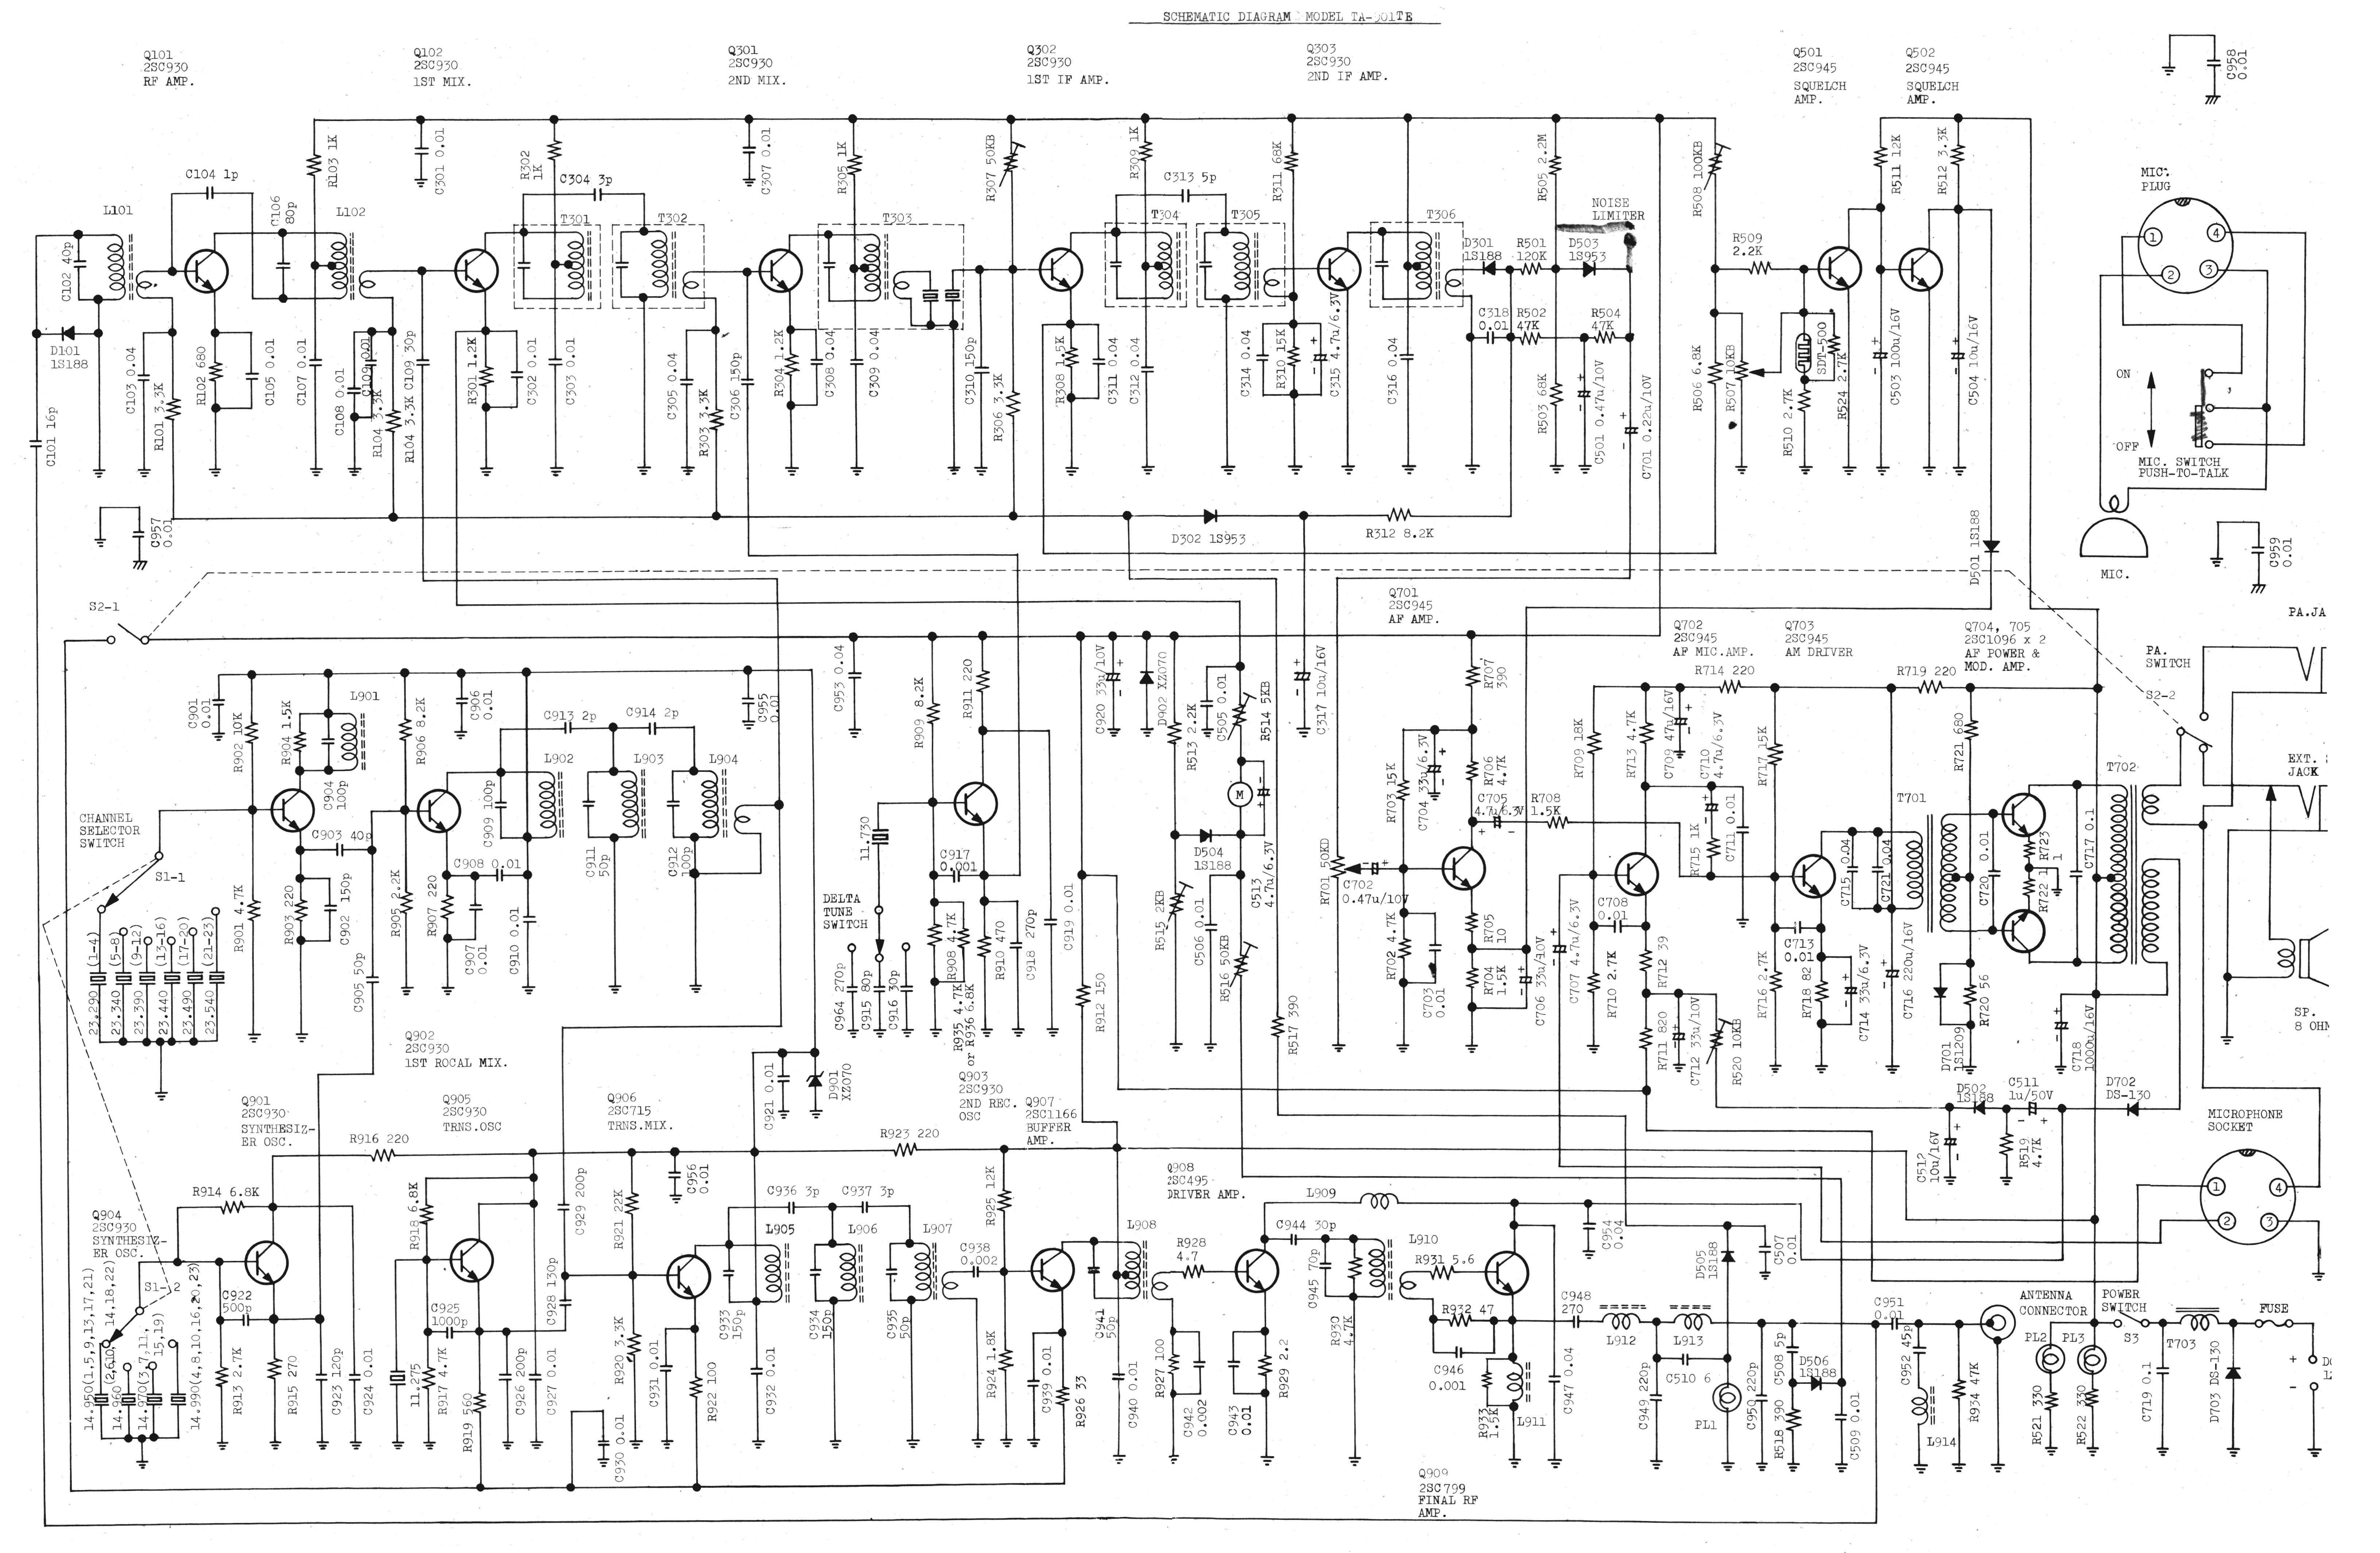 Mod Rly2 5v also Diy V1 additionally Pcb furthermore Highaccuracy 16 Bit Dac For Arduino as well Index. on pcb schematic